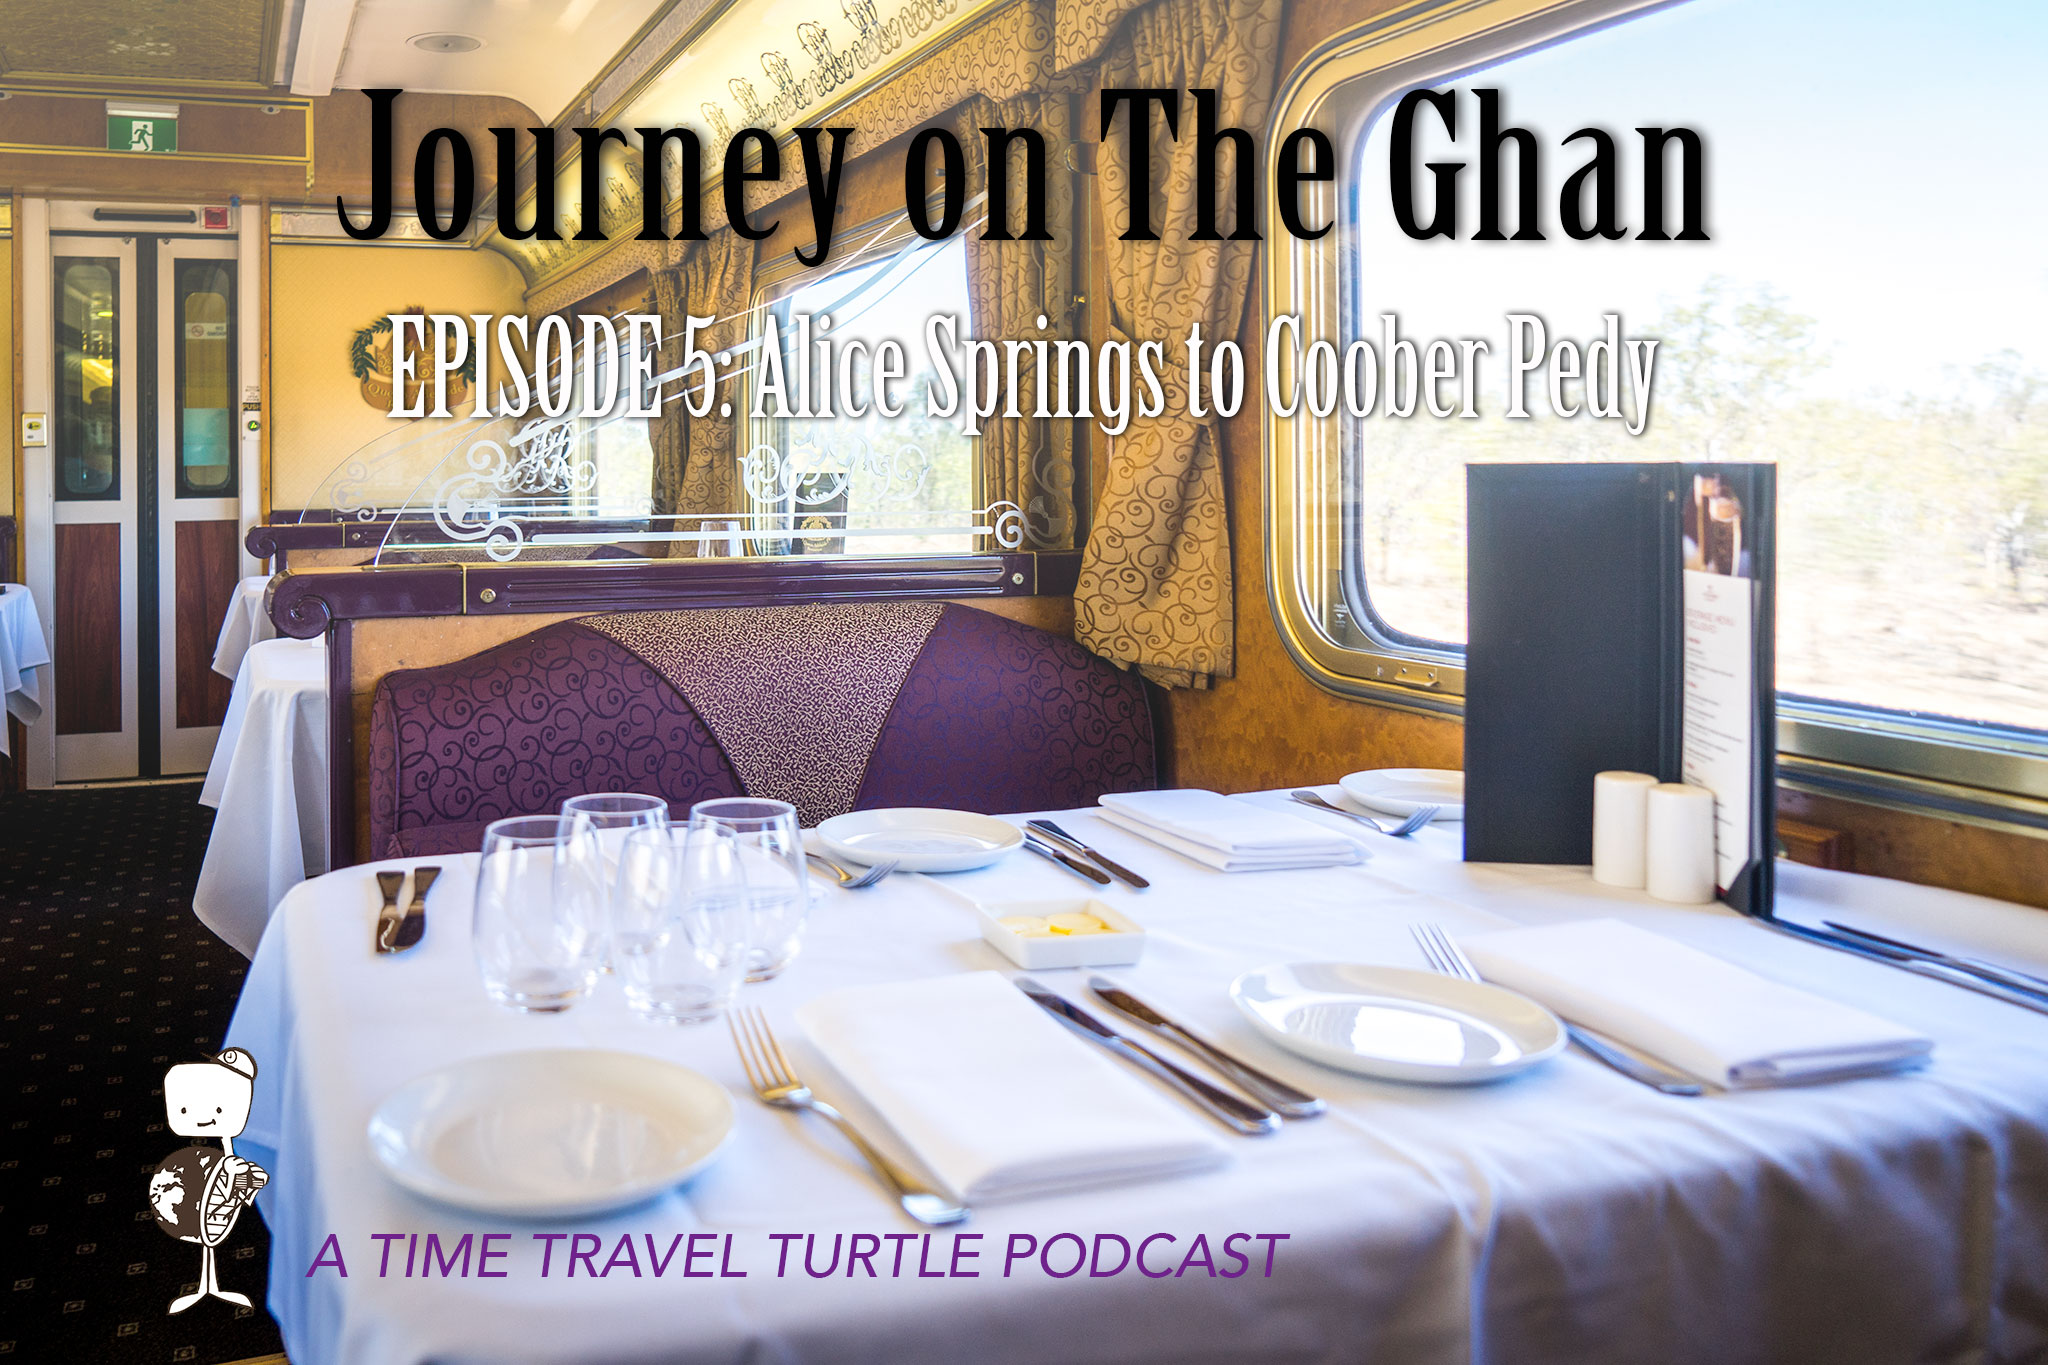 Journey on the Ghan: Episode 5